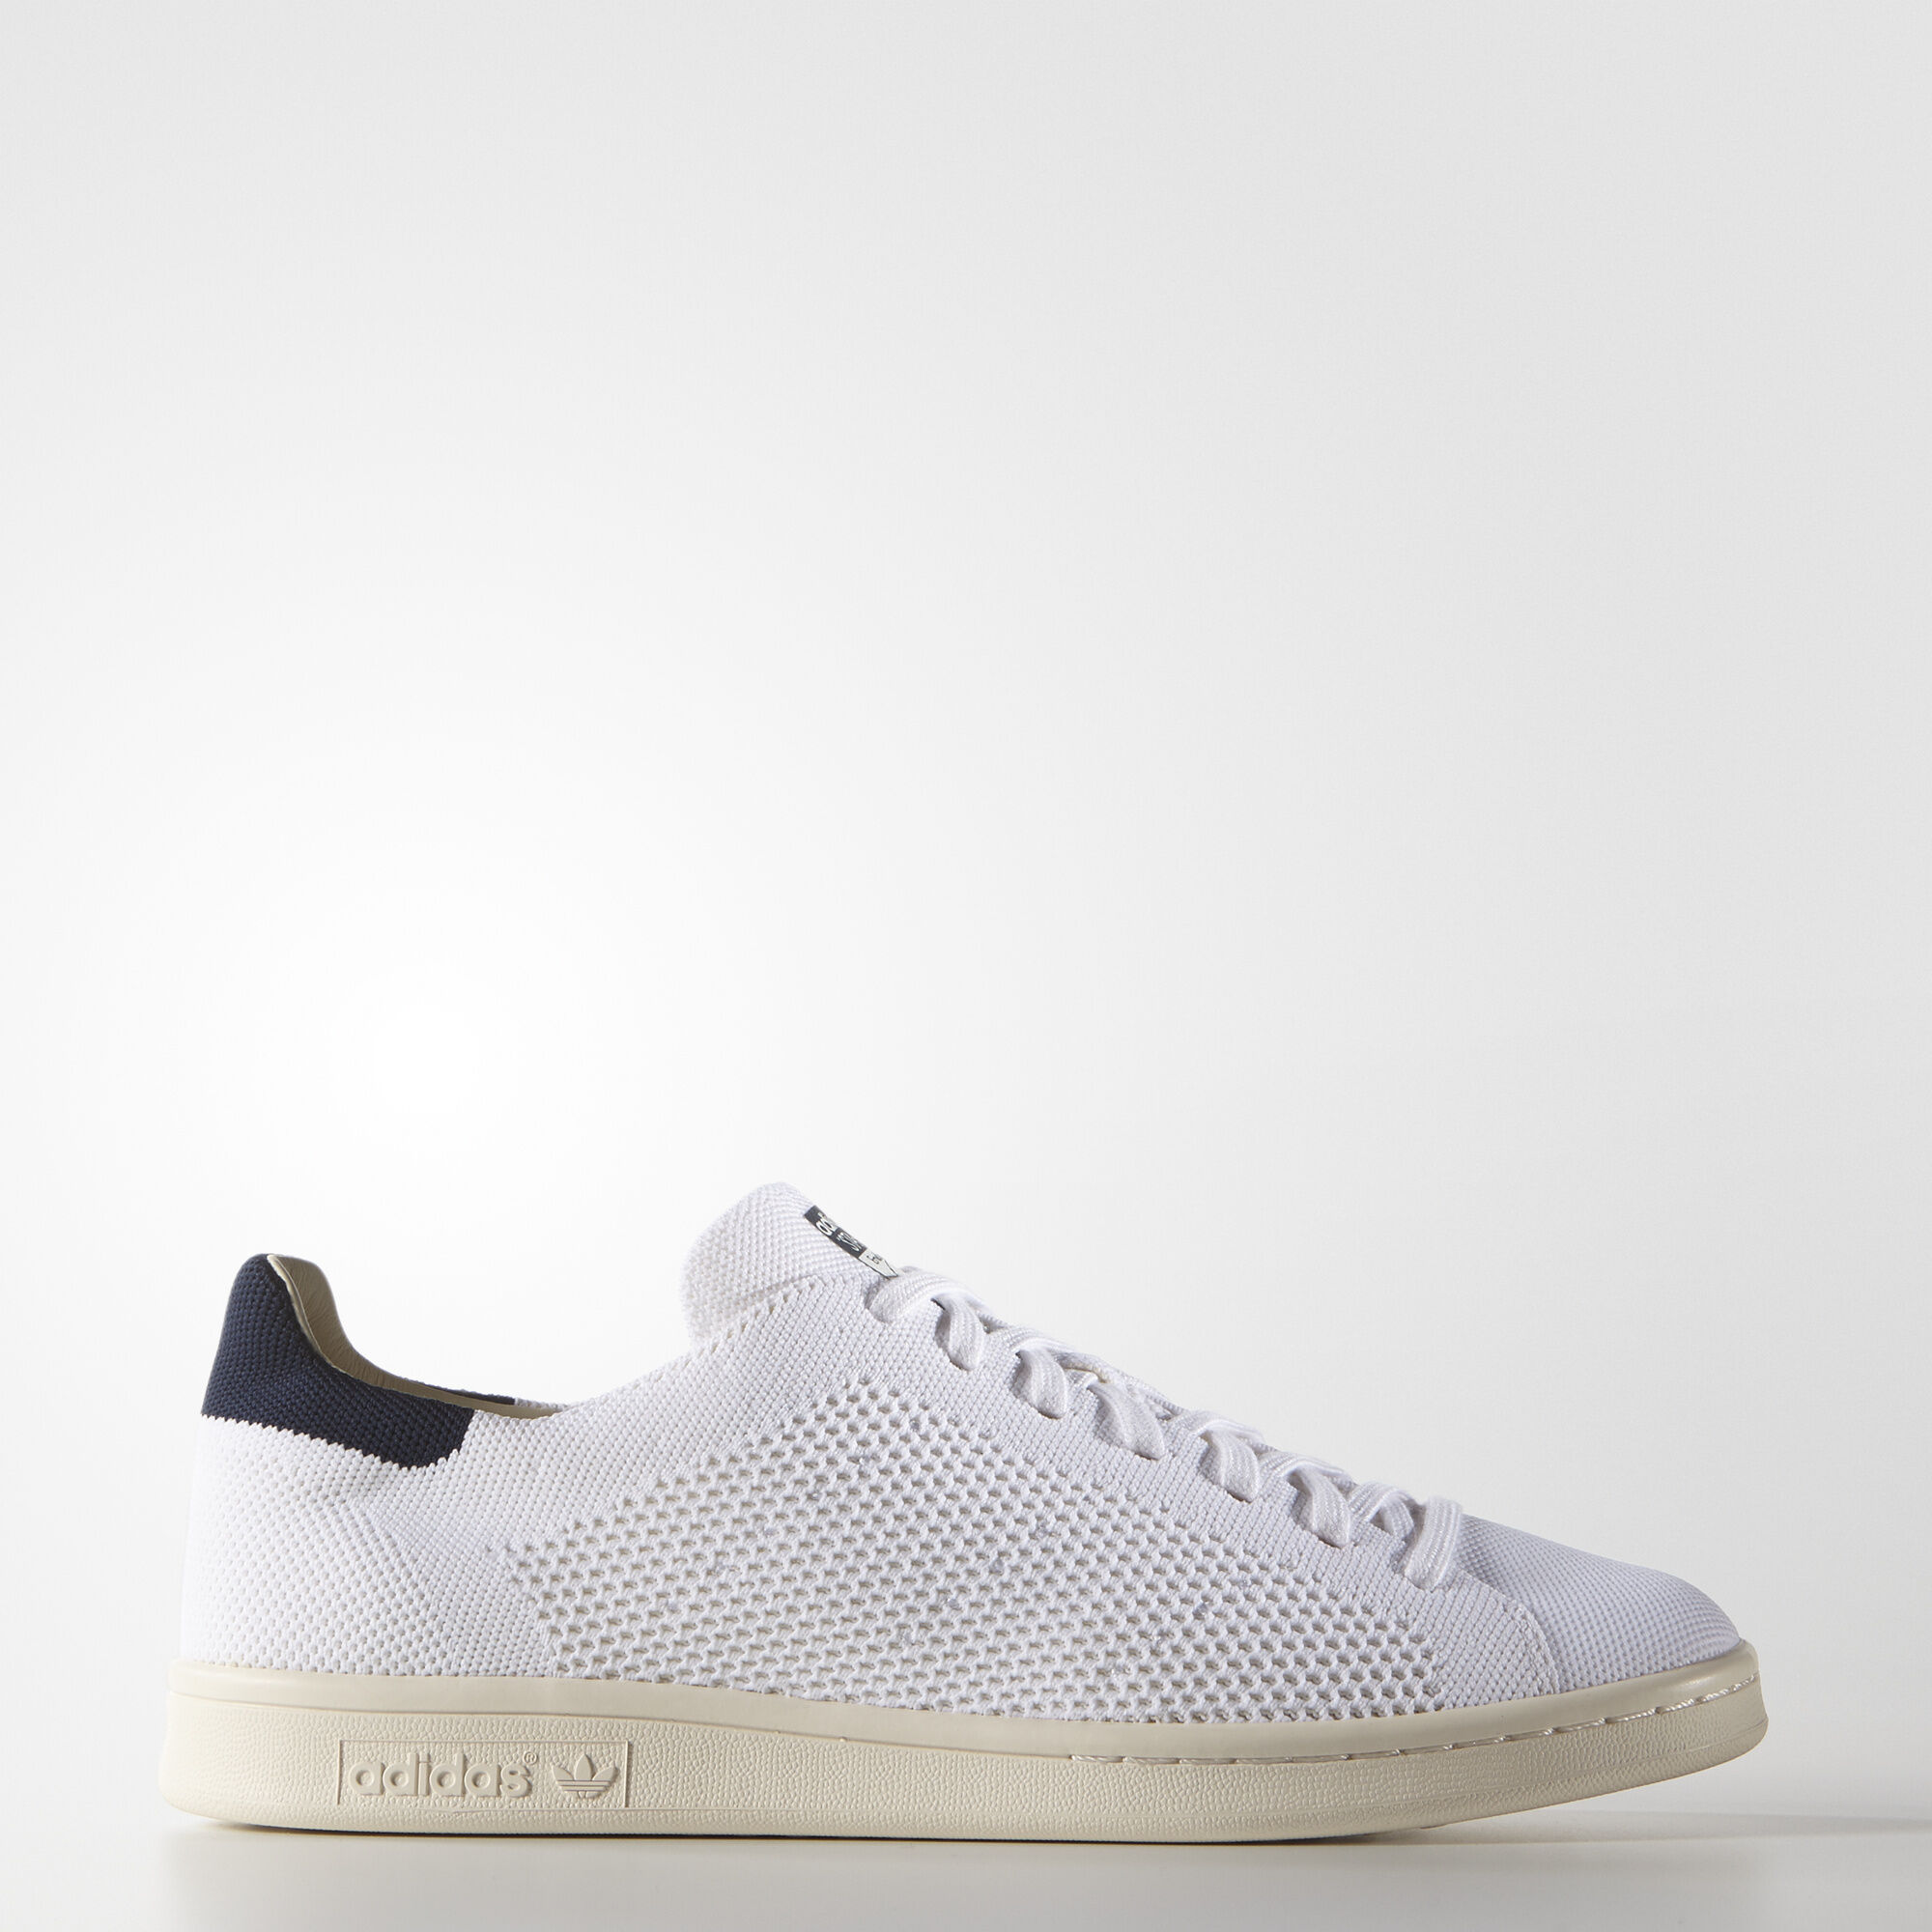 Adidas Stan Smith Männer